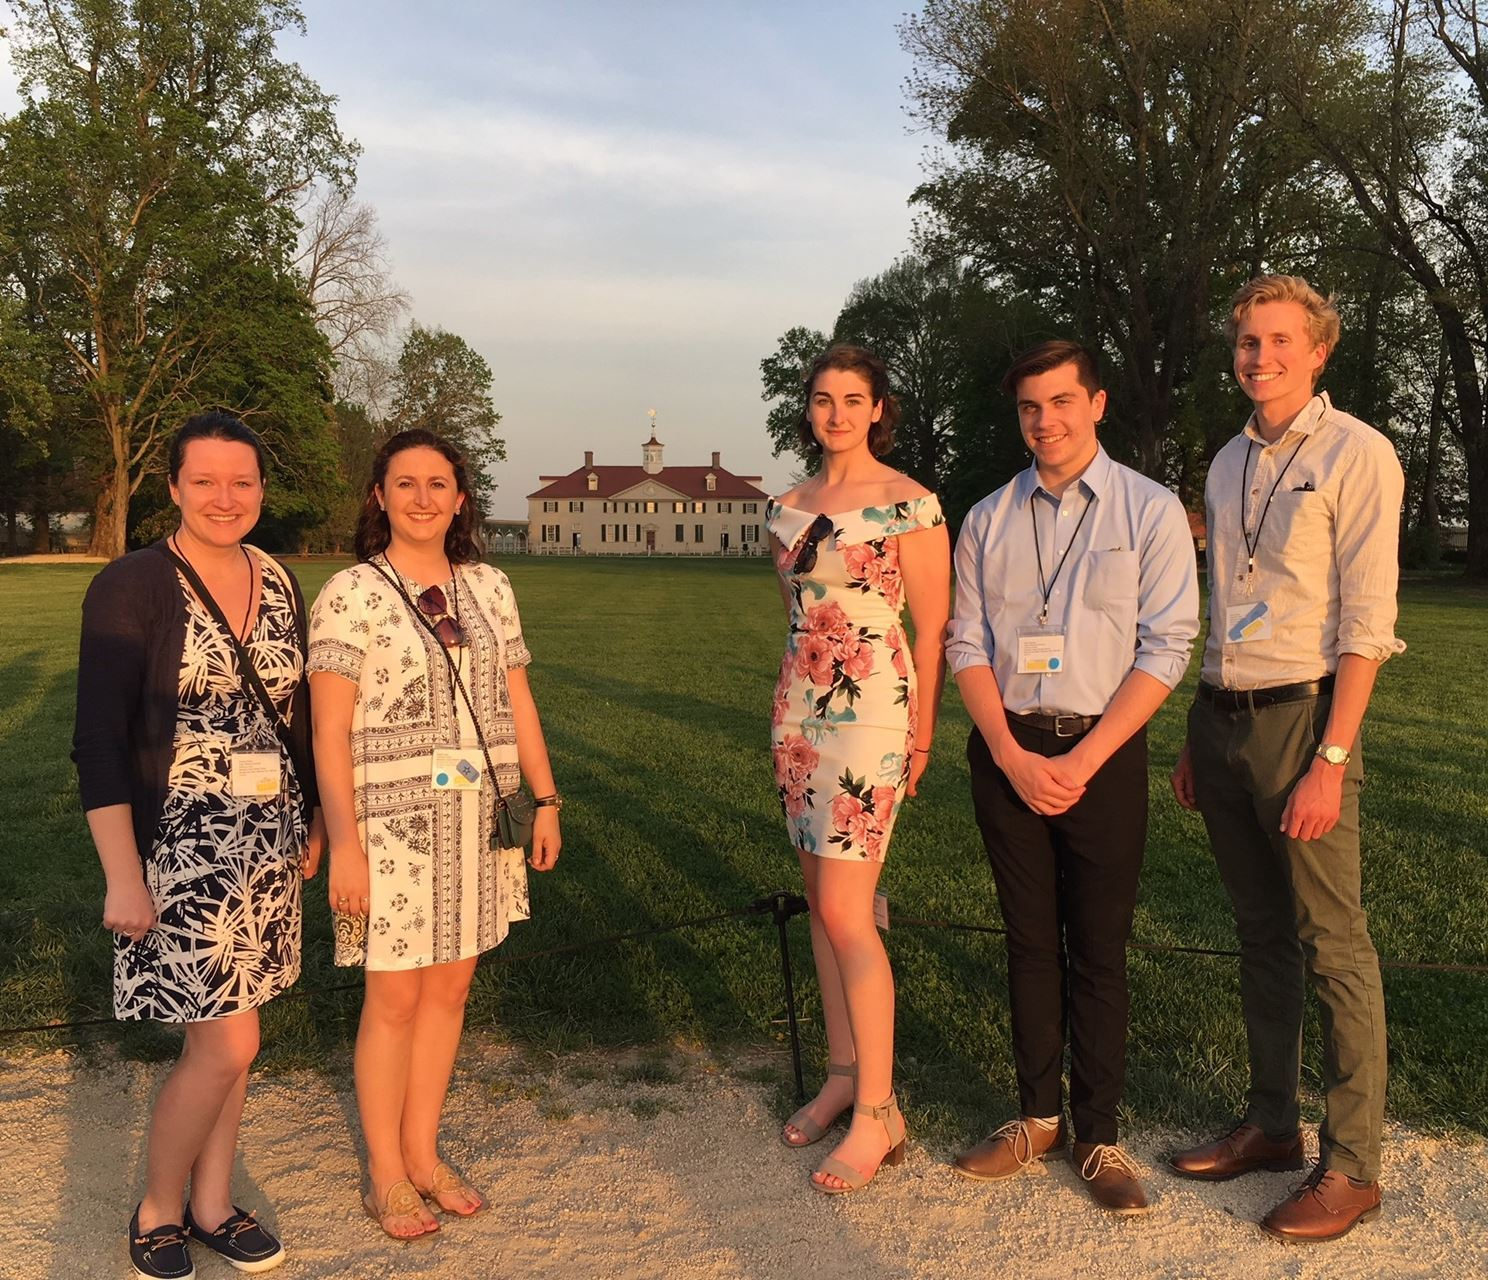 RWU Historic Preservation Program students at Mount Vernon. L to r Chelsea Towers, Sarah Lasky, Olivia Jacinto, Matthew Papineau, Henry Feuss. Photo by Elaine Stiles